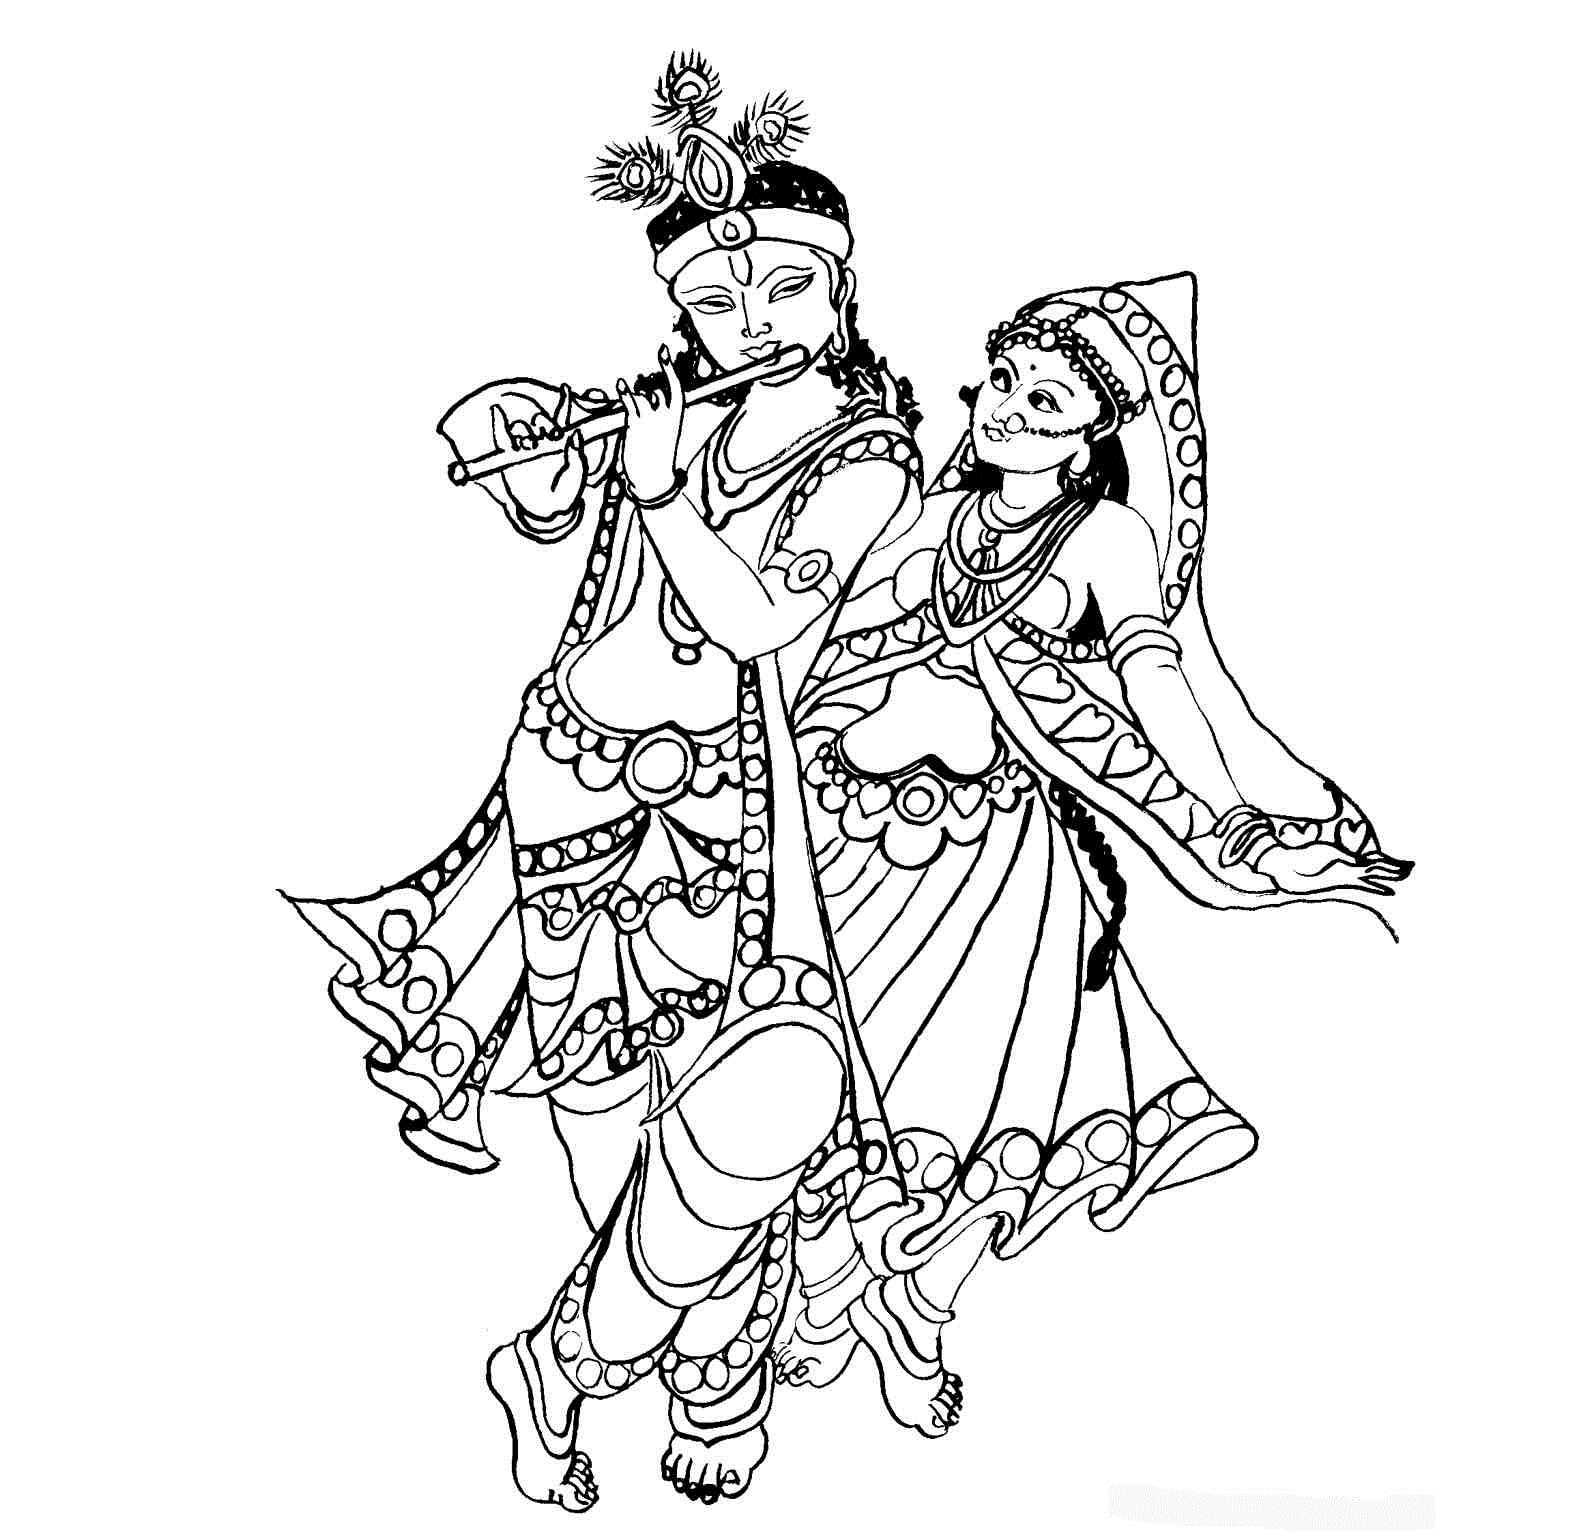 Pikmin 3 coloring pages - Lord Radha Krishna Coloring Drawing Free Wallpaper Baby Krishna Images Coloring Pages